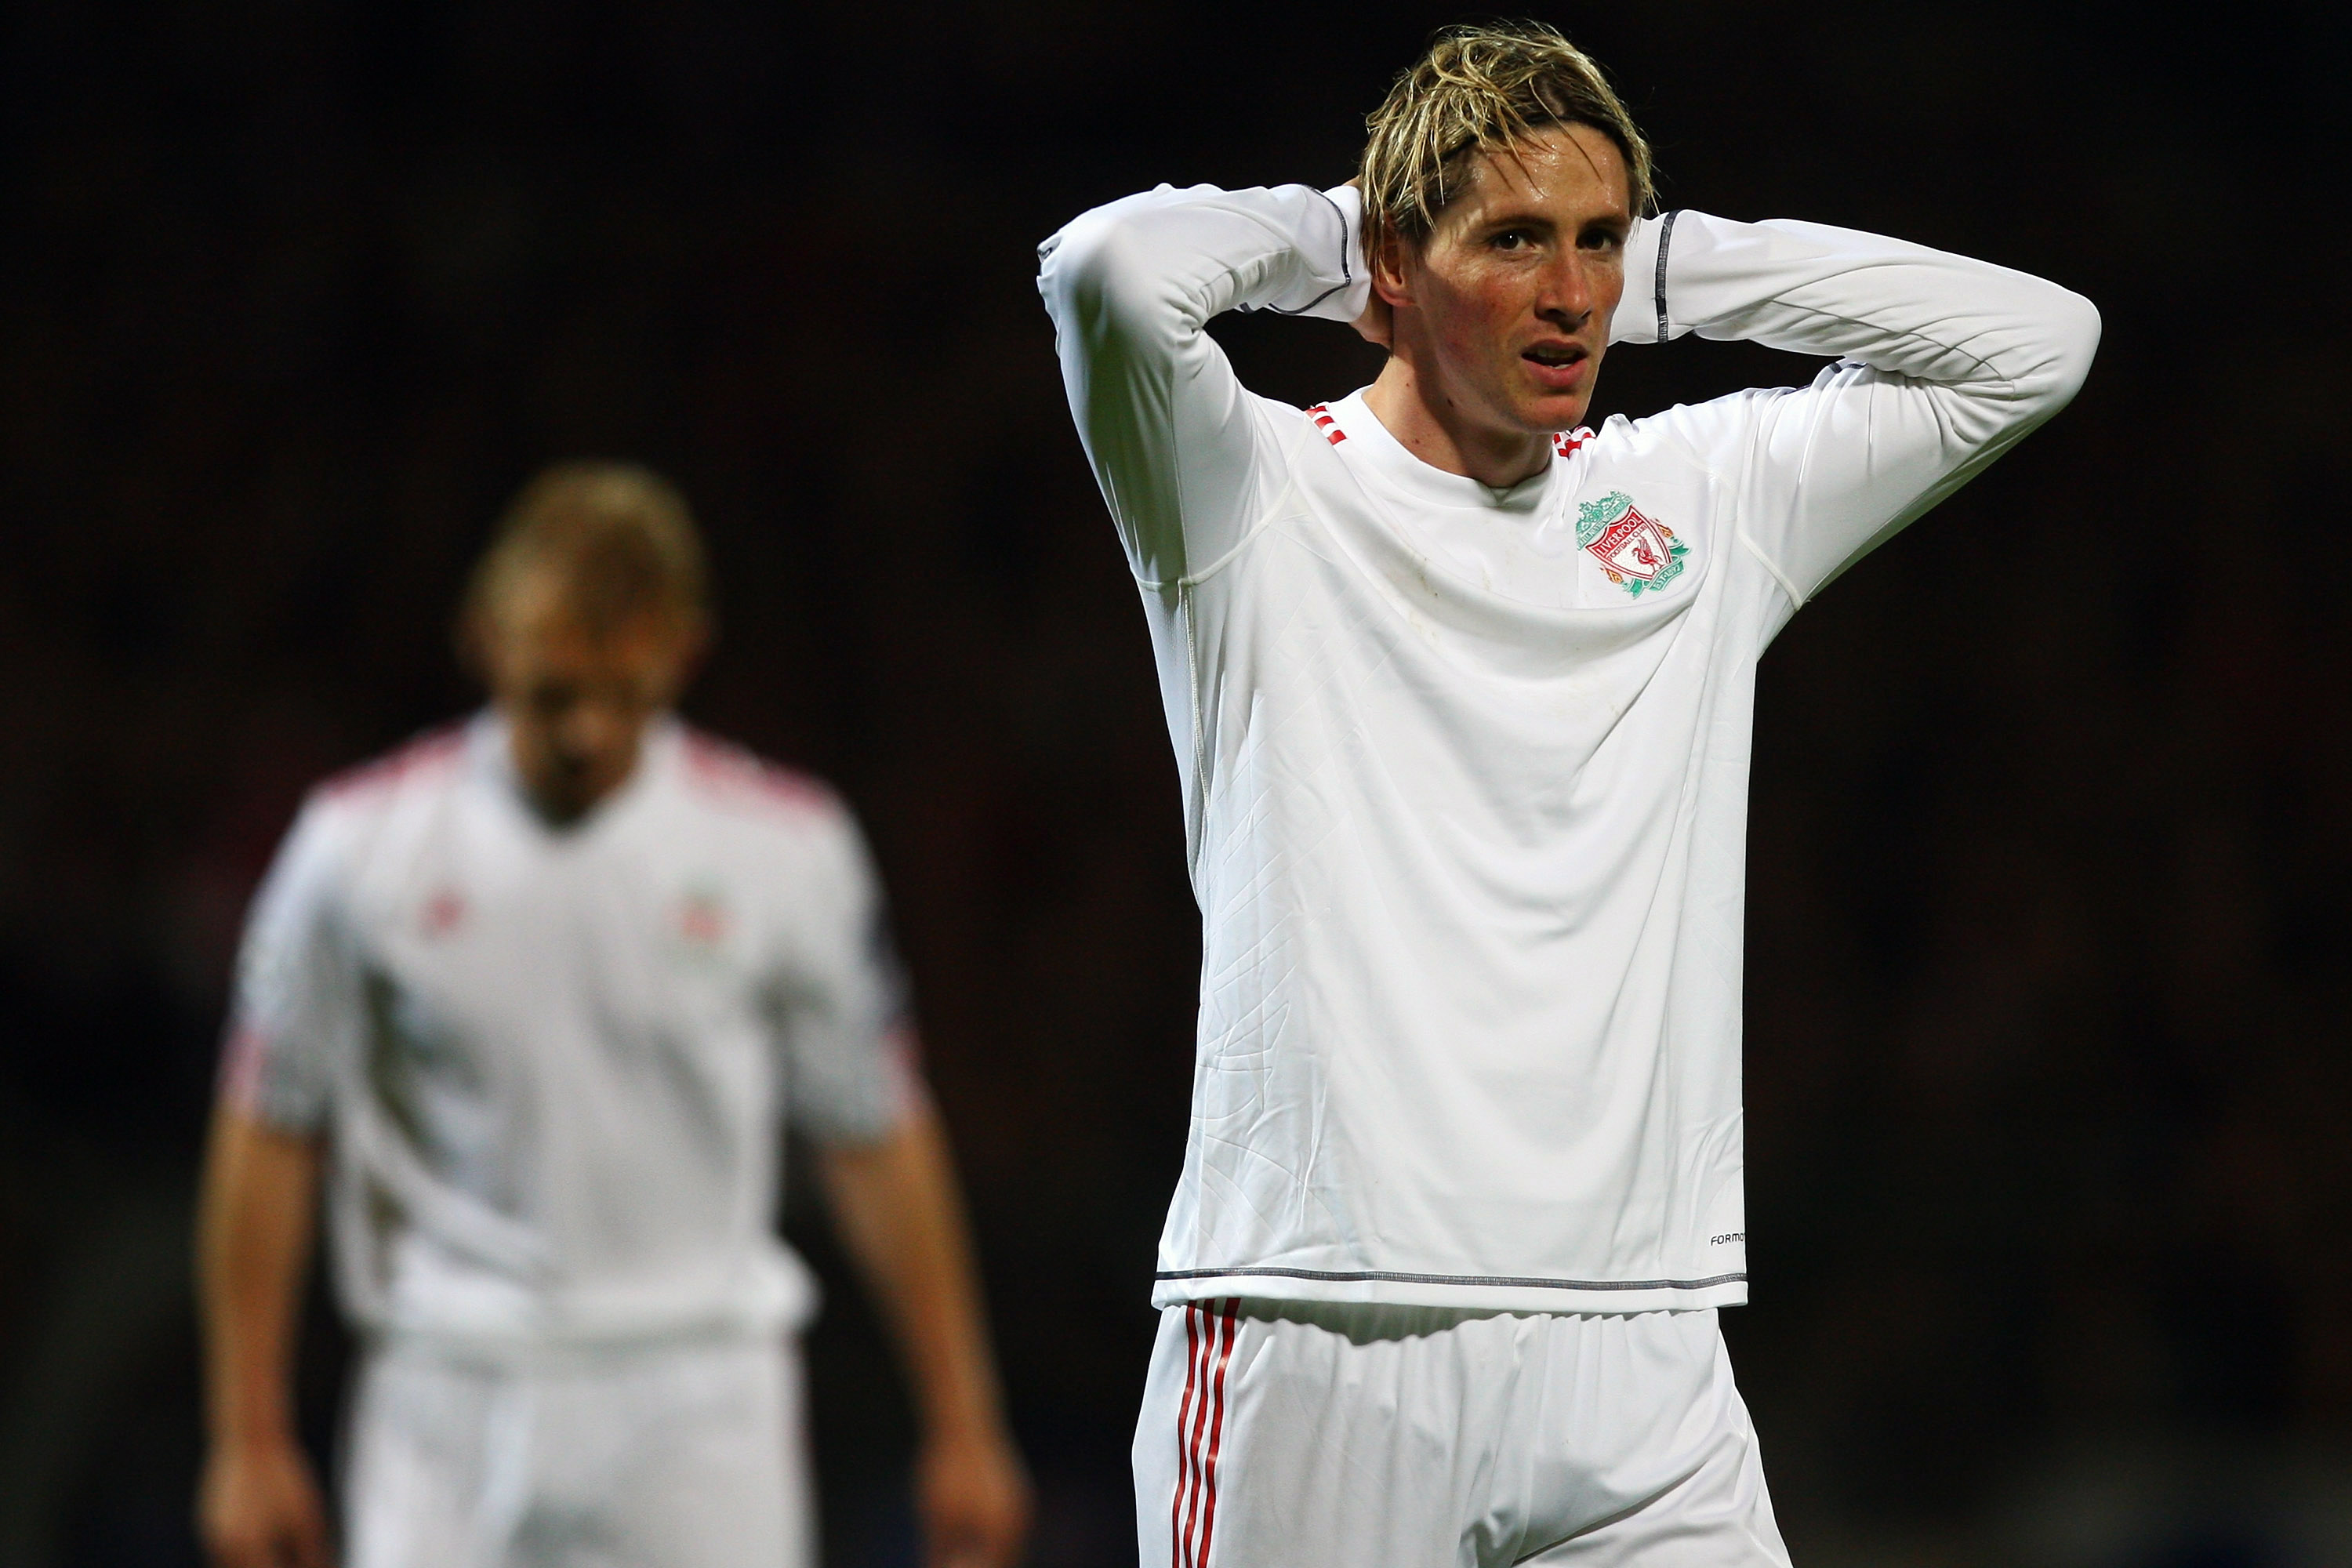 LYON, FRANCE - NOVEMBER 04:  Fernando Torres (R) of Liverpool rues a missed chance during the Lyon v Liverpool UEFA Champions League Group E match at the Stade de Gerland on November 4, 2009 in Lyon, France.  (Photo by Michael Steele/Getty Images)